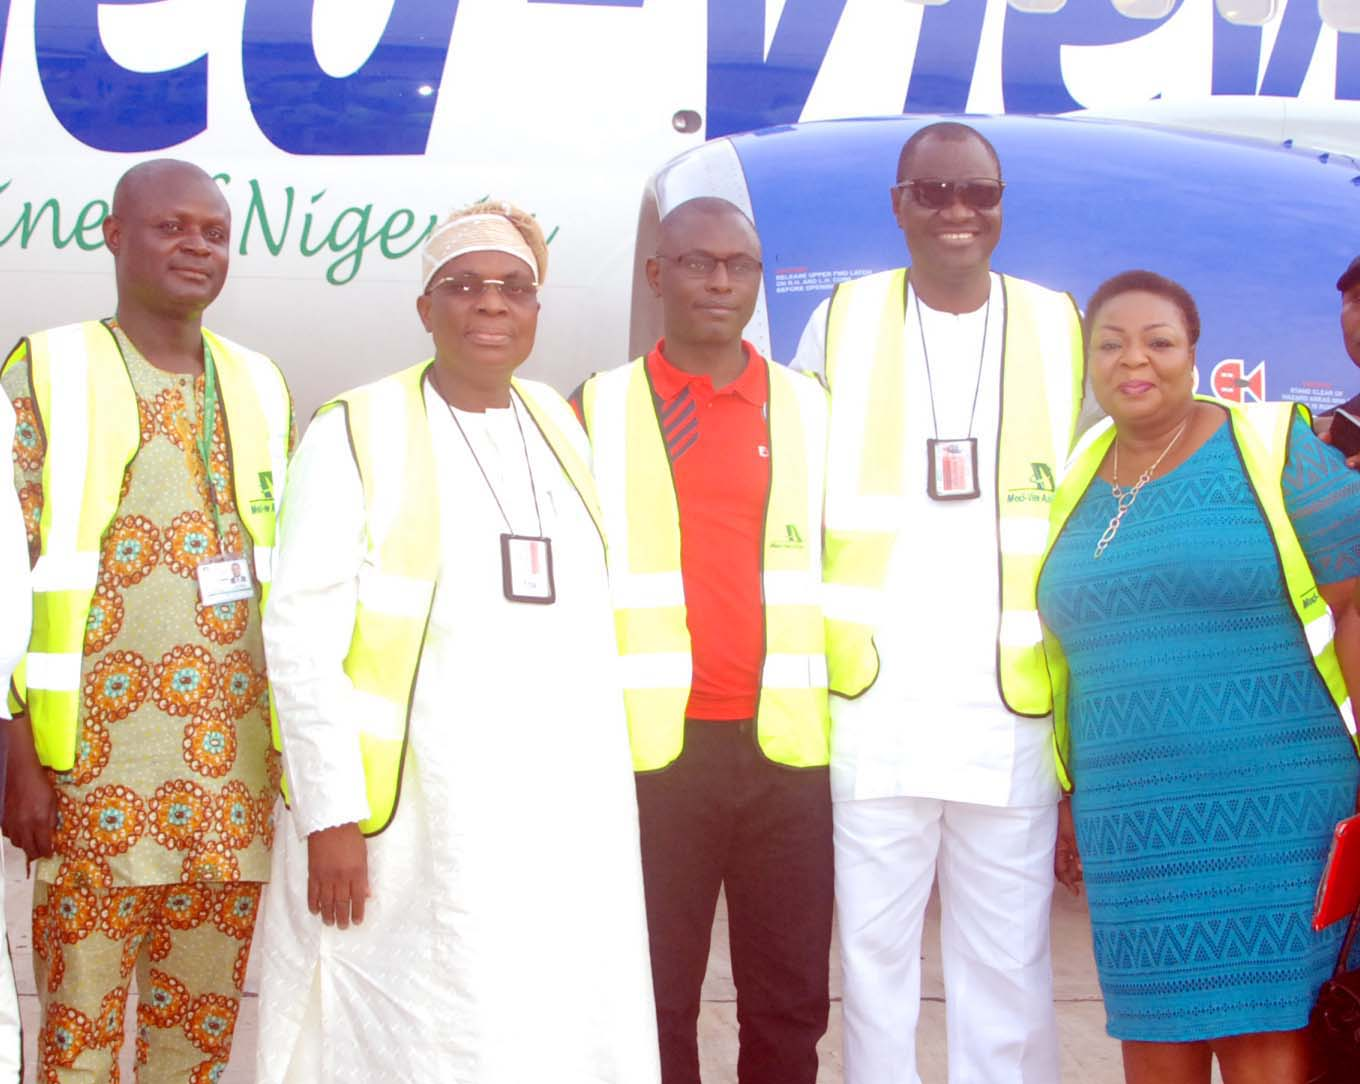 From left Adedayo Olaniyan, Chief Accountant, Medview Airline; Alhaji Muneer Bankole, MD/CEO; Alhaji Na'Allah Ishaq, Executive Director, Business Development; Eng Lookman Animashaun, Executive Director, Technical and Mrs Senanu Ladipo, Relationship Manager Corporate Banking Group Infrastructure, First Bank PLC at the Murtala Muhammed Airport 2 as Med-View Airline took delivery of a Boeing 737-500 Aircraft over the weekend. Photo Lamidi Bamidele